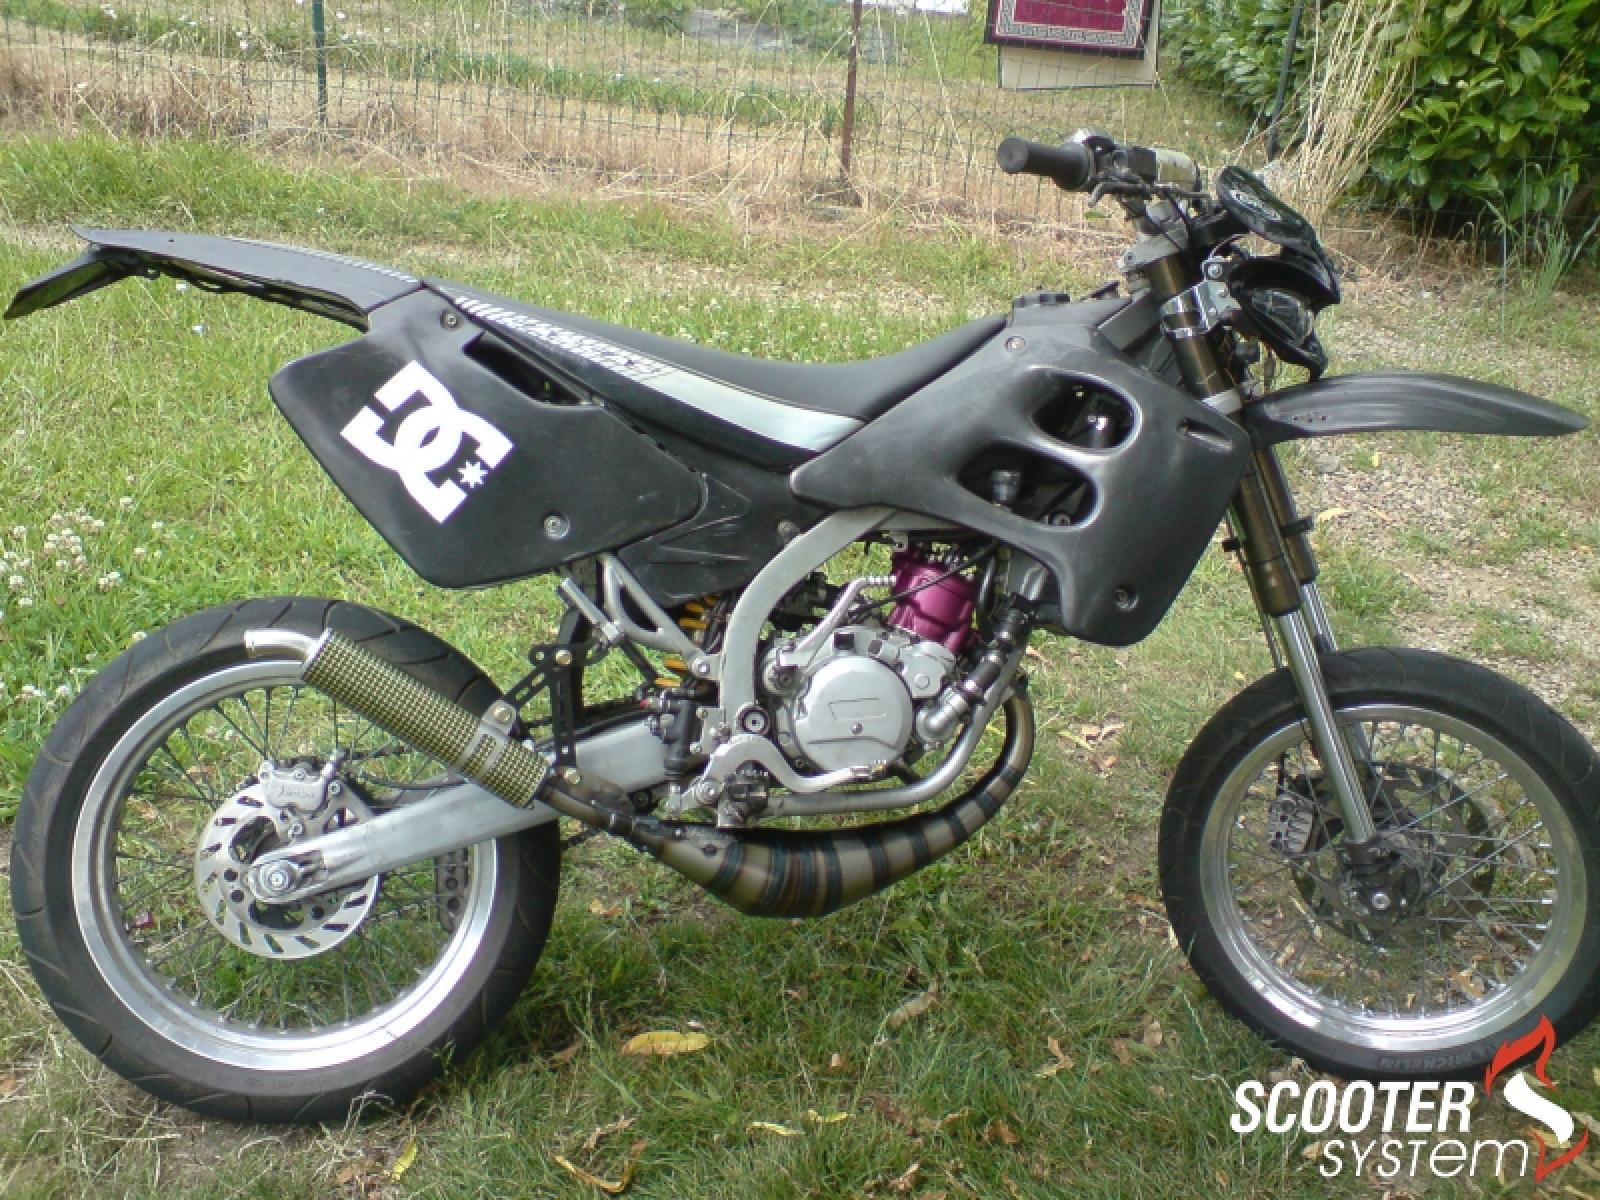 GAS GAS EC 50 Rookie 2002 images #94423